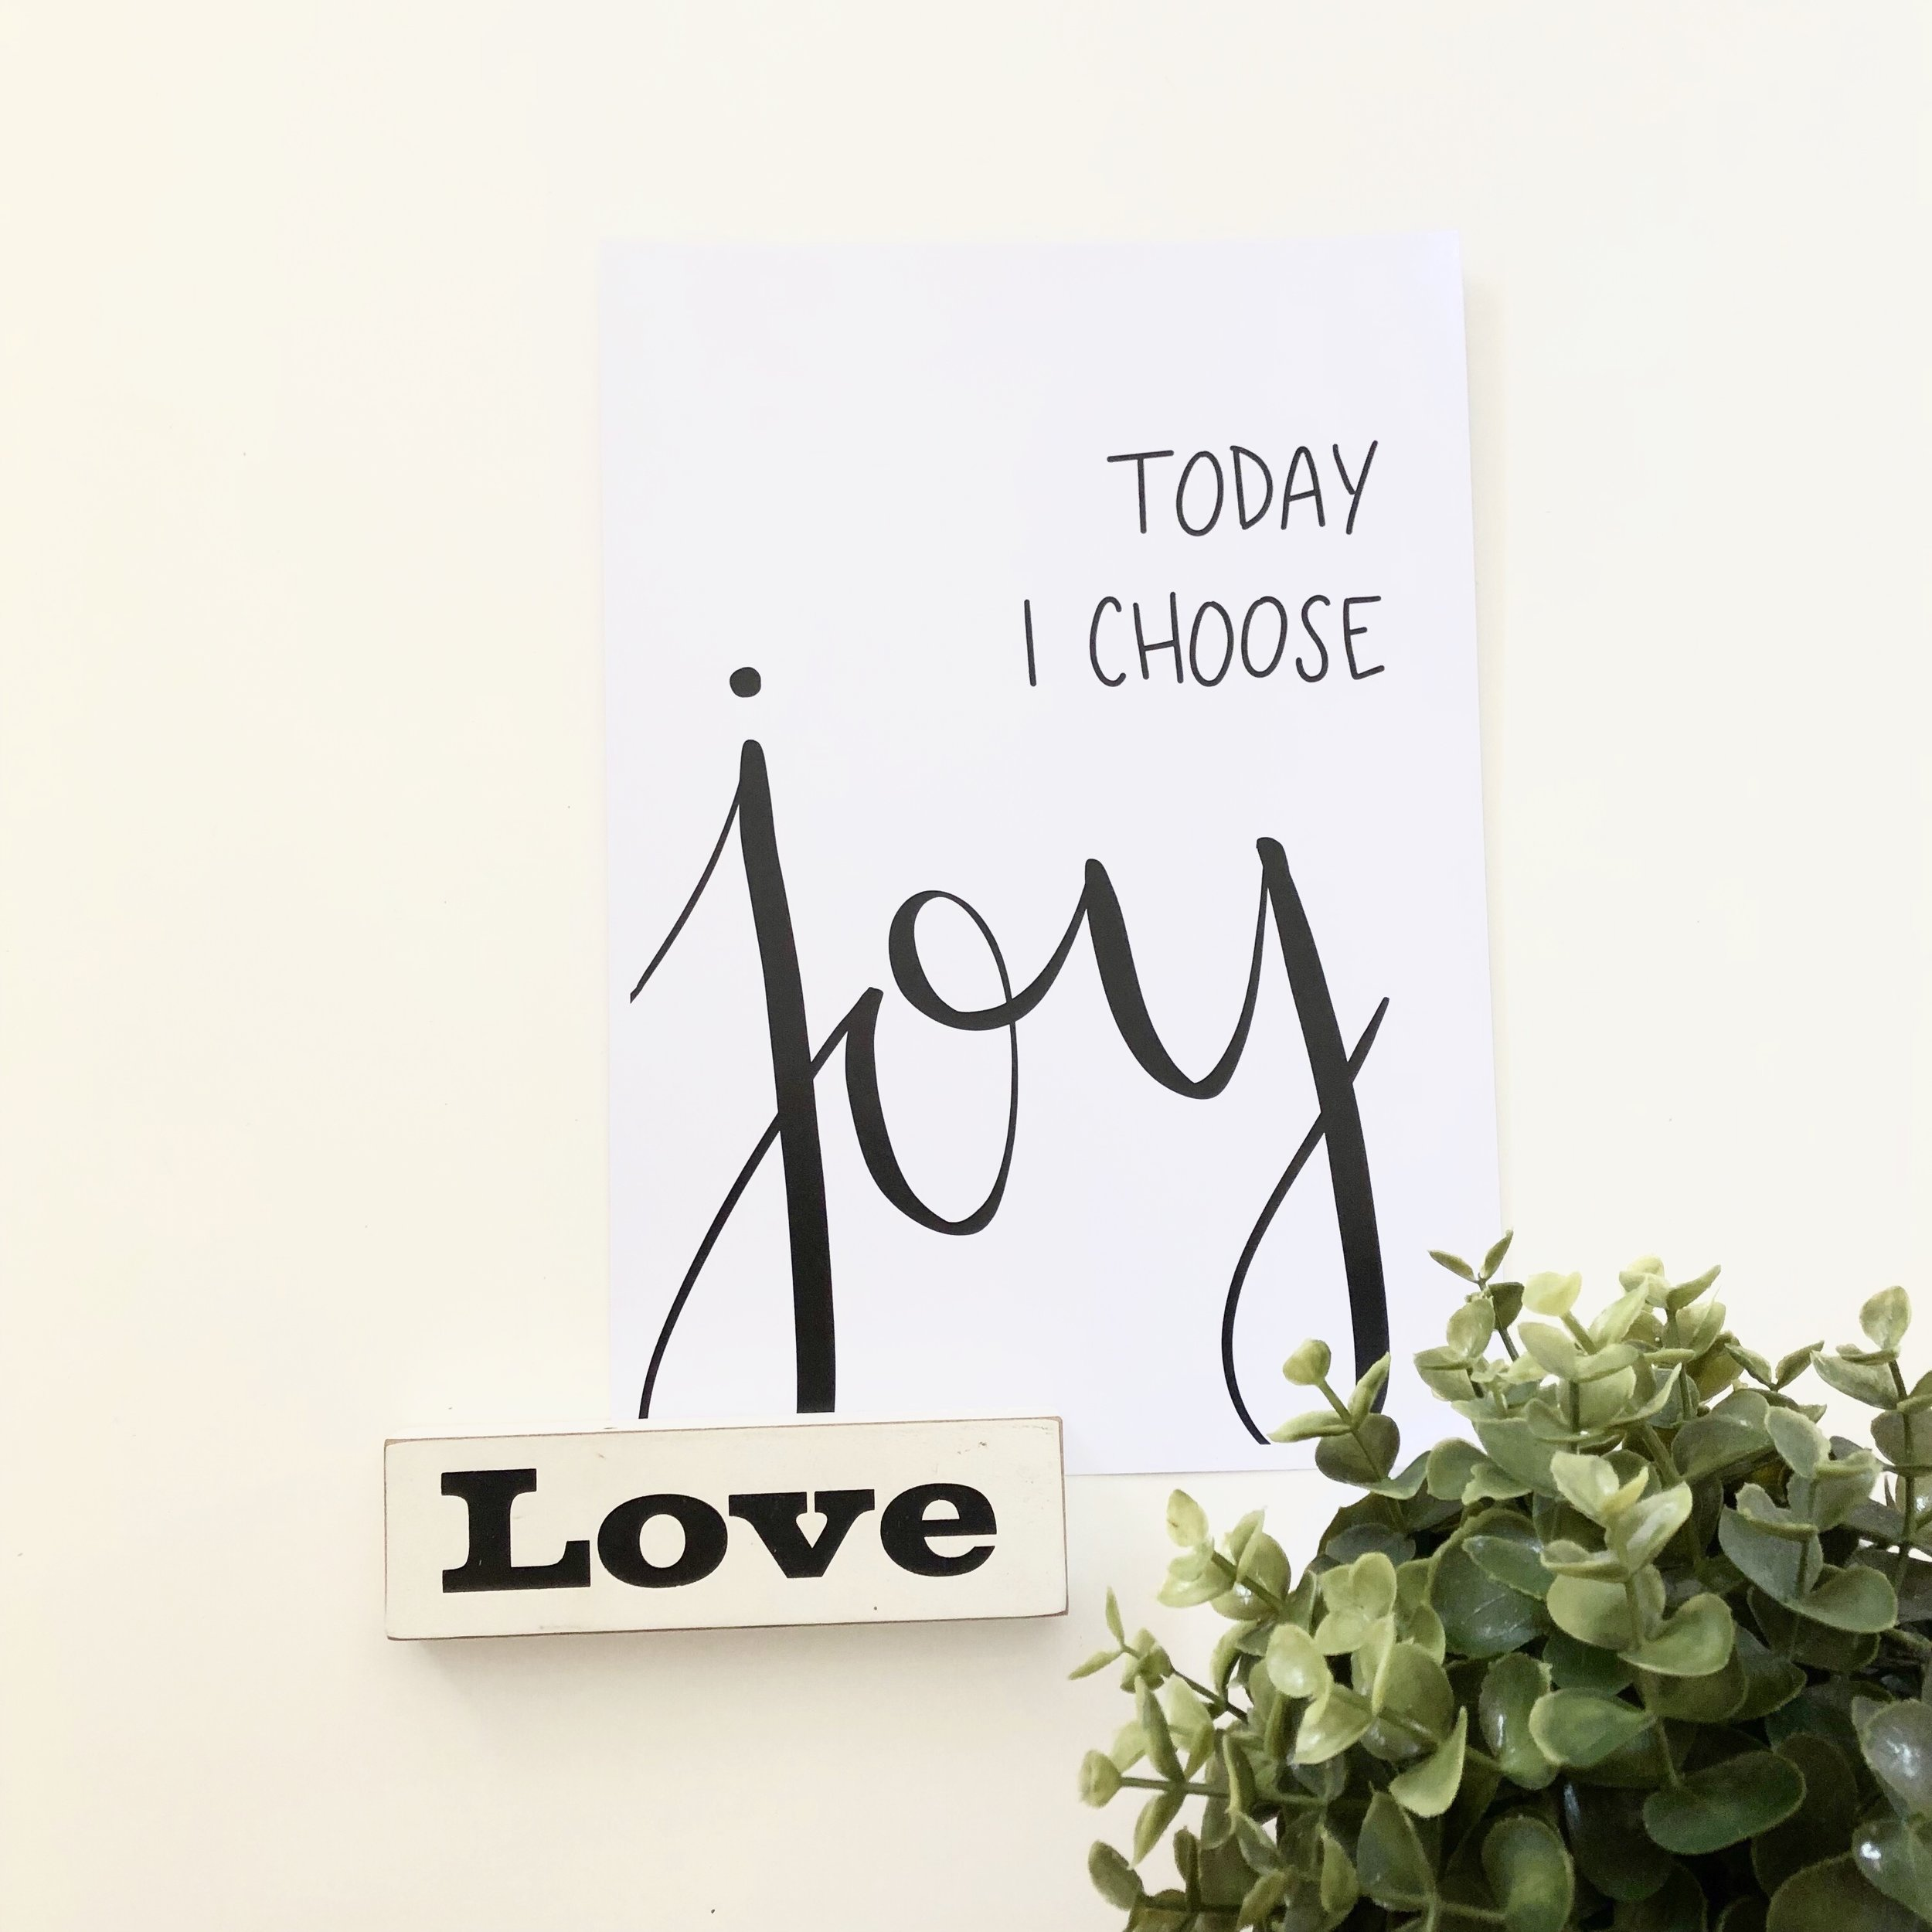 I choose Joy.jpg